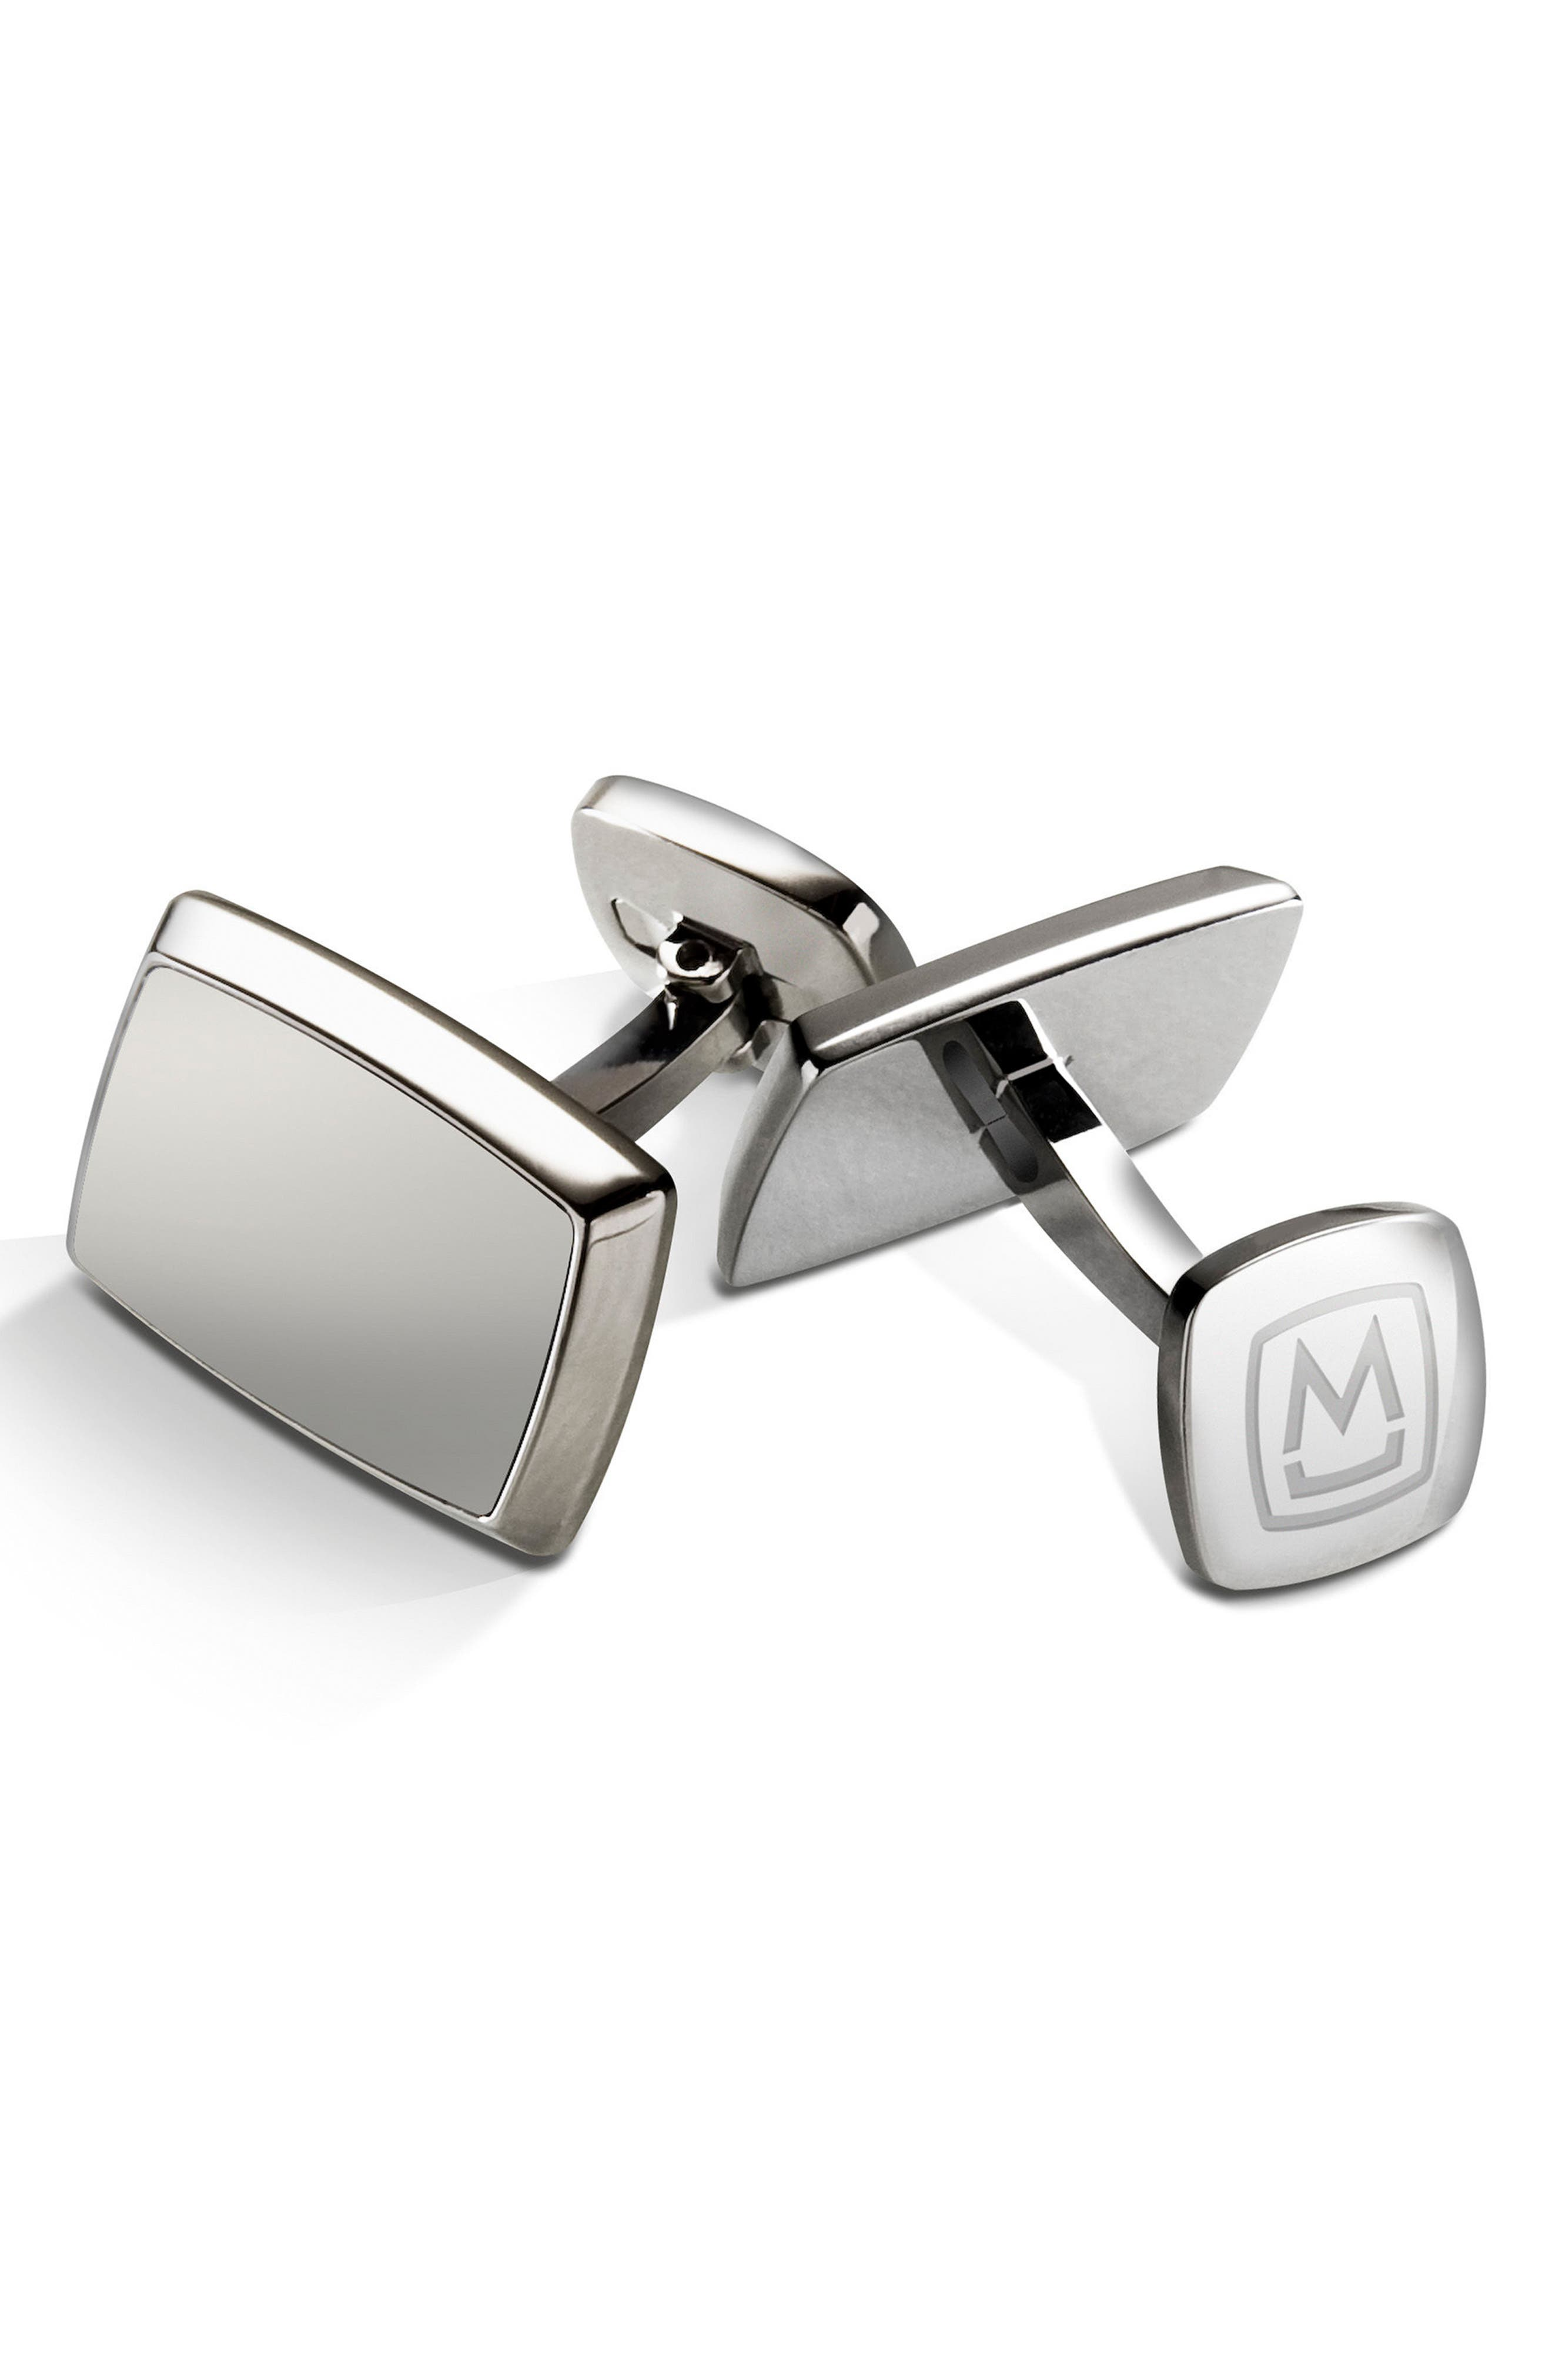 Main Image - M-Clip Stainless Steel Cuff Links